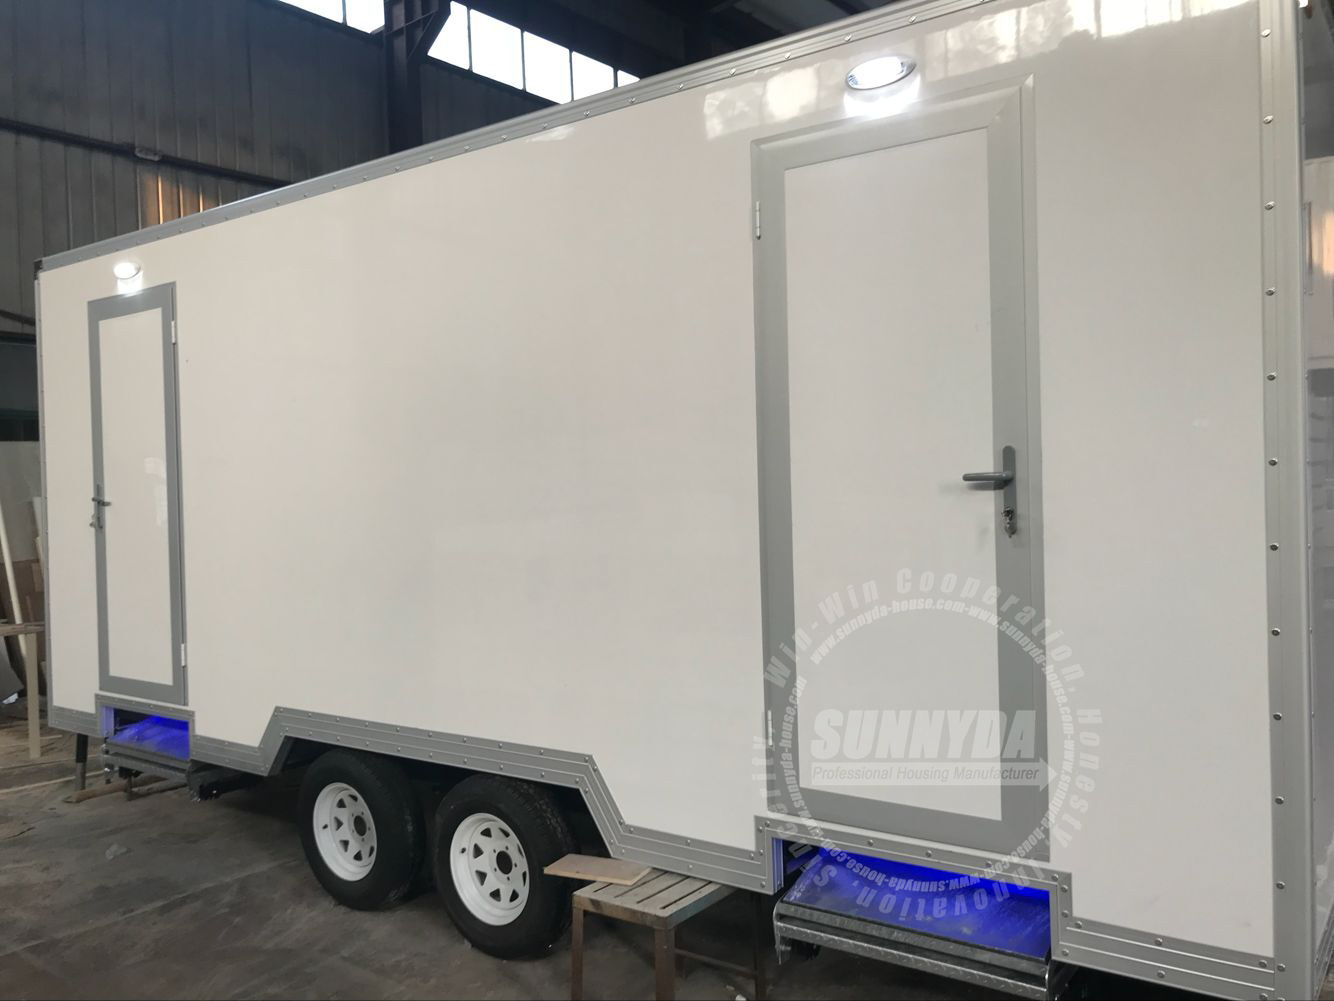 Luxury Most Popular Toilets Plastic Outdoor Cheap Portable Mobile Toilet Restrooms Trailer